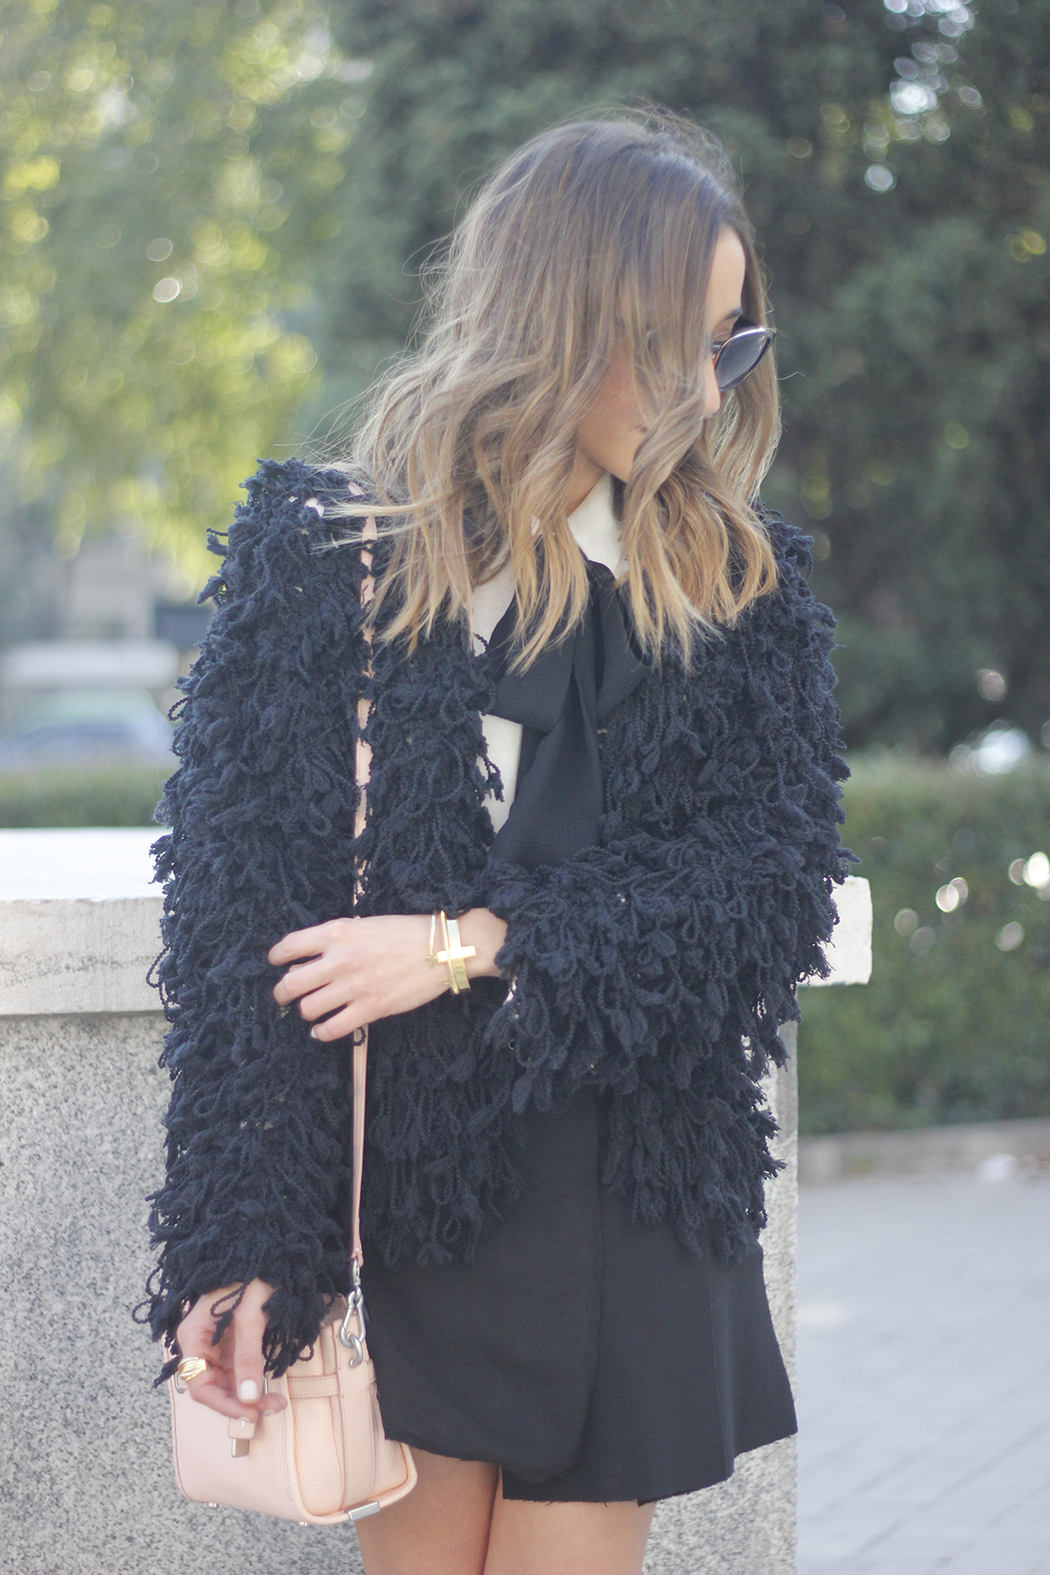 black jacket shirt with black bow coach pink bag heels outfit03